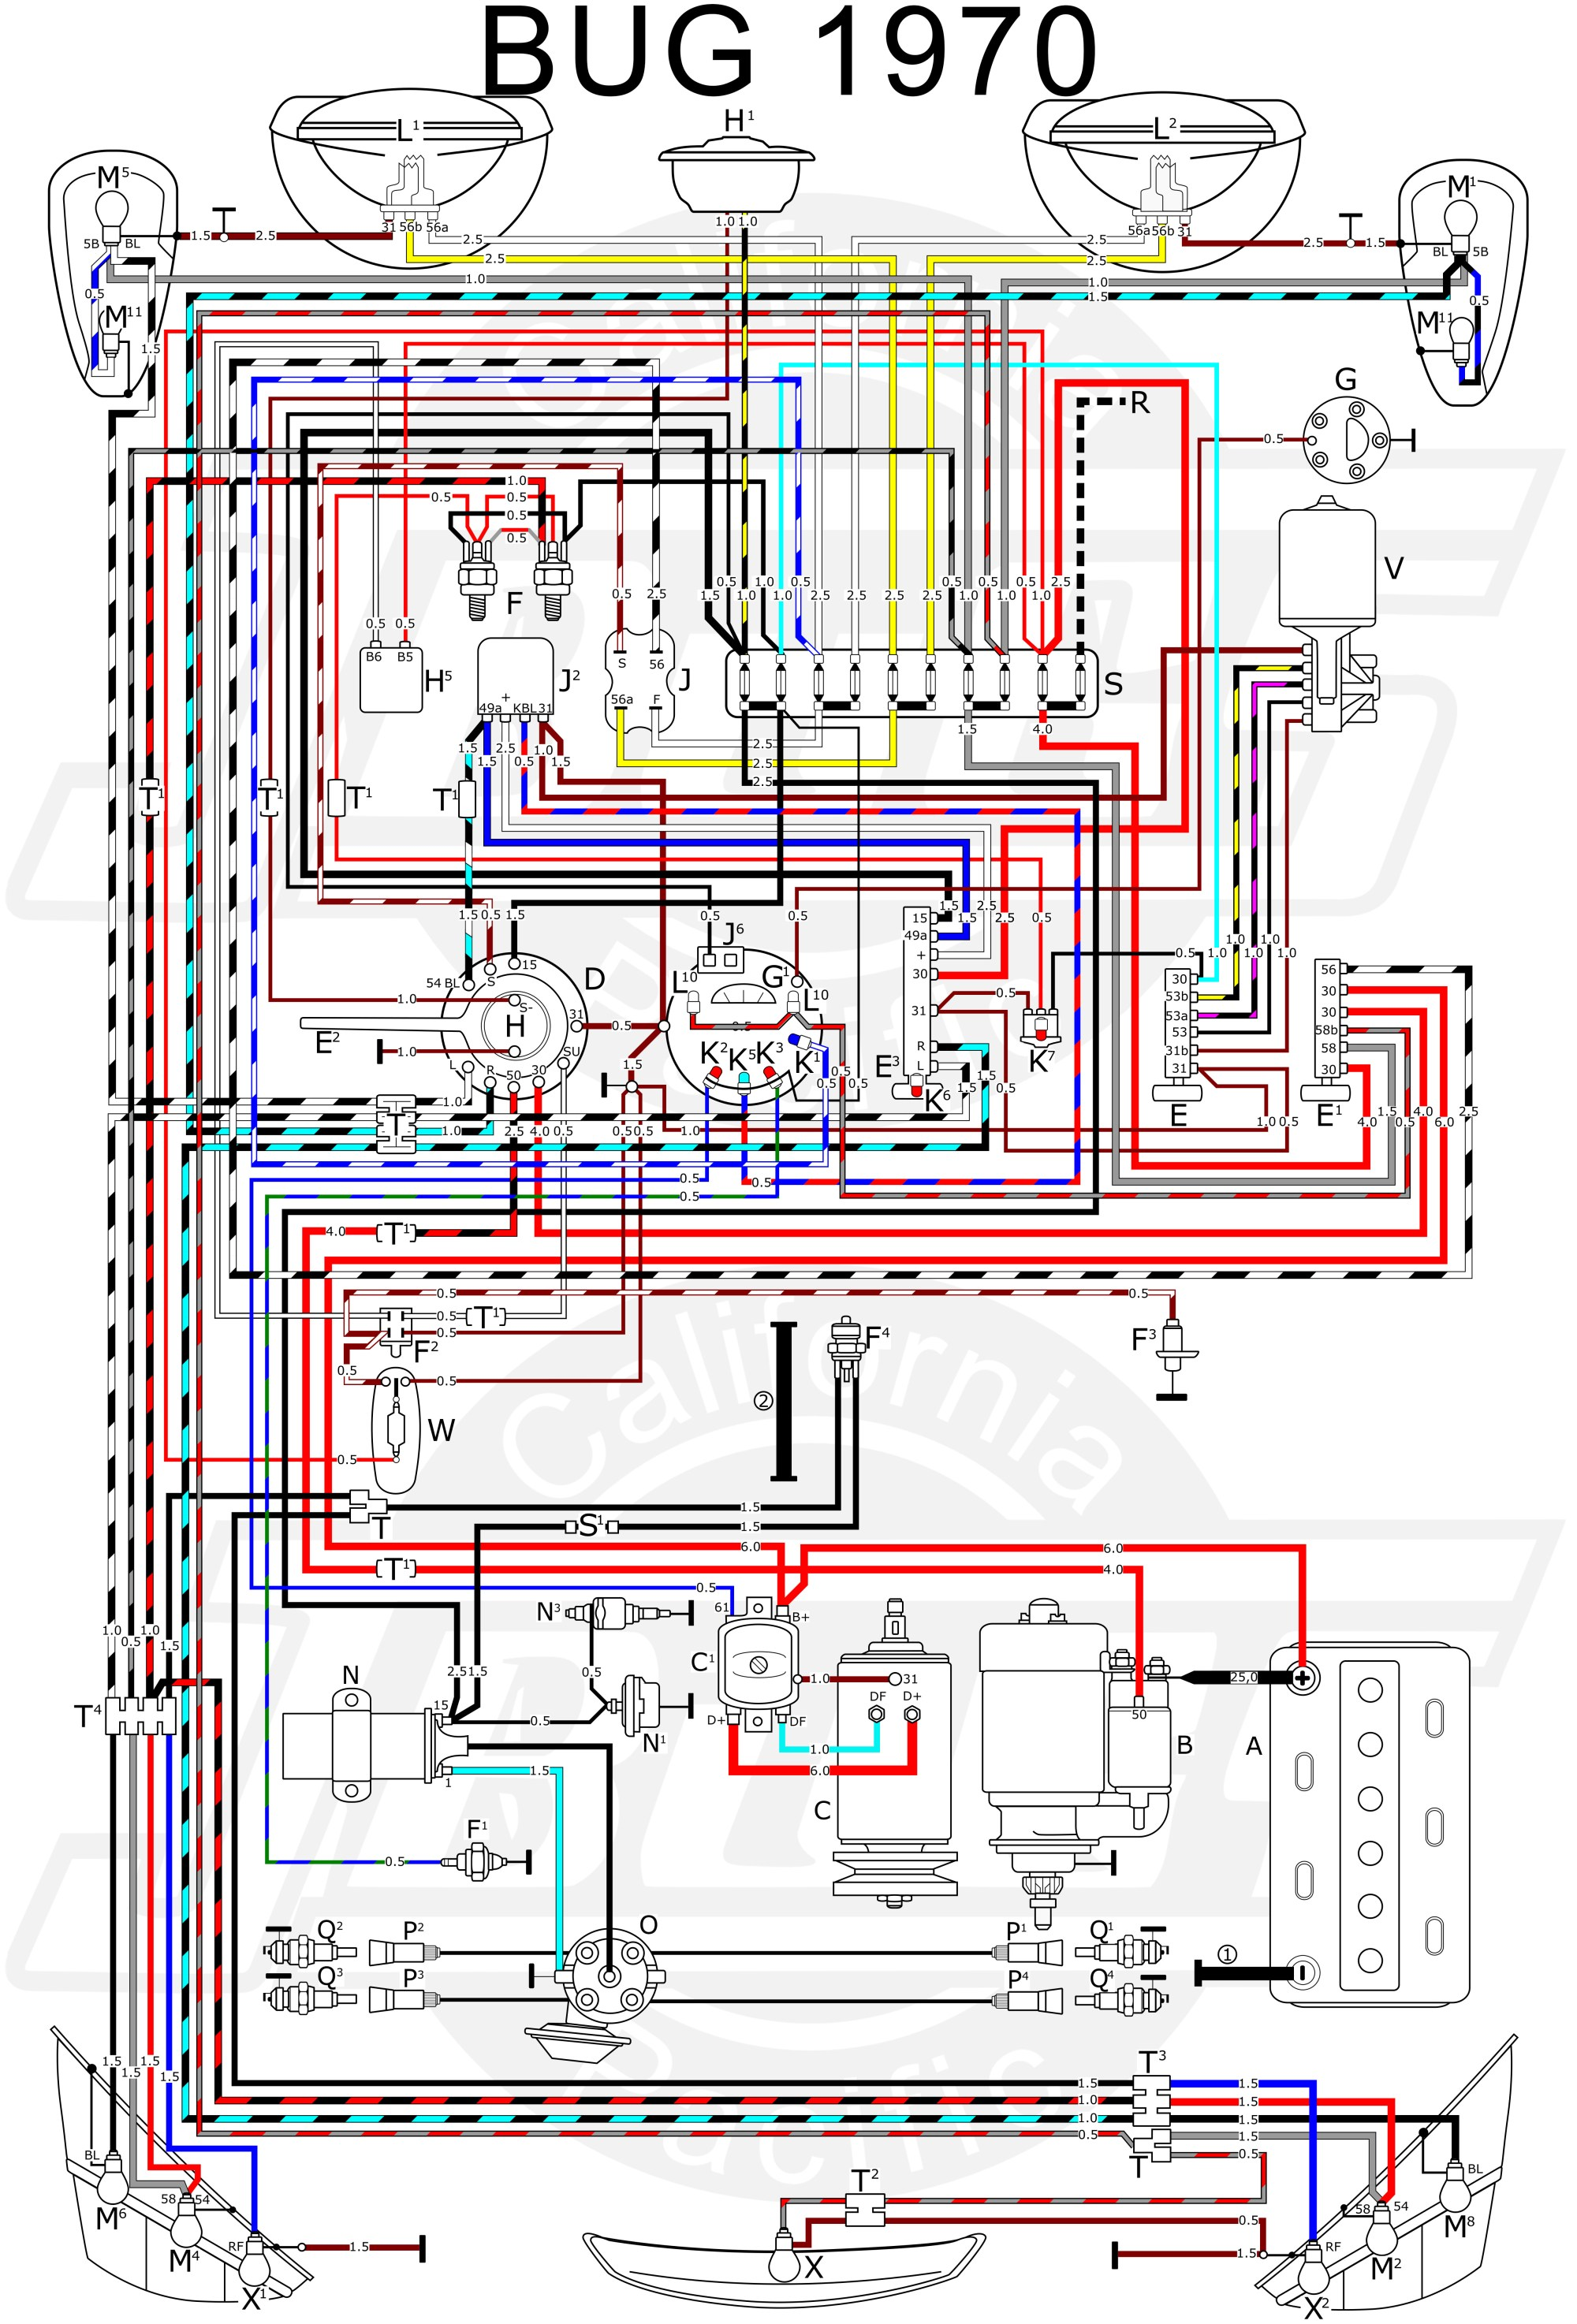 hight resolution of emergency flasher switch wiring diagram 1971 vw bug wiring wiring diagram for emergency flashers